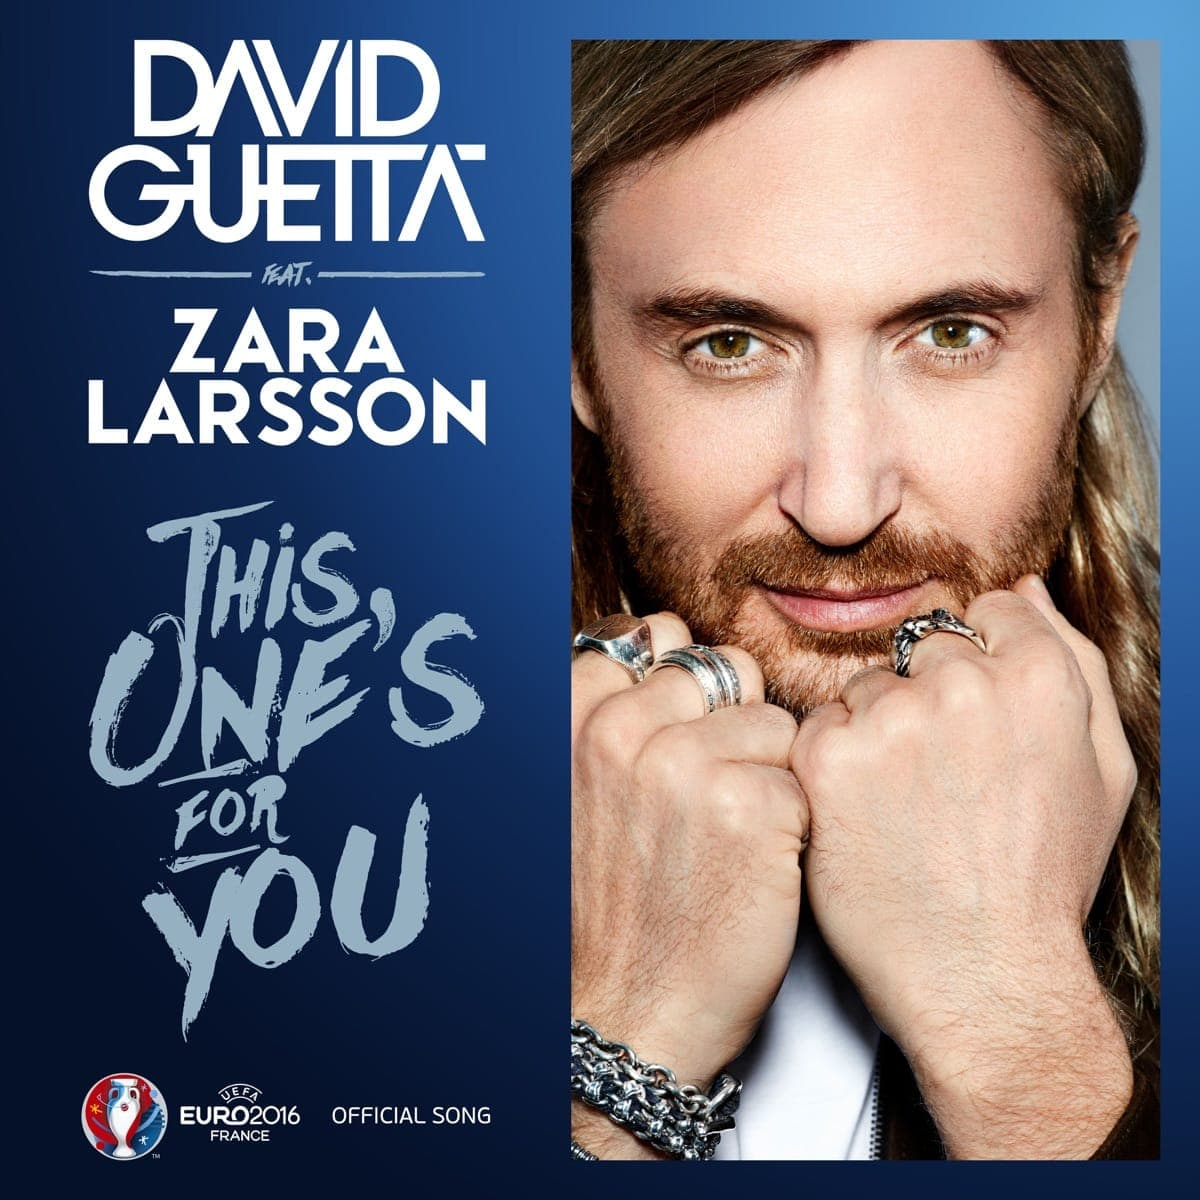 This One's For You - David Guetta & Zara Larsson